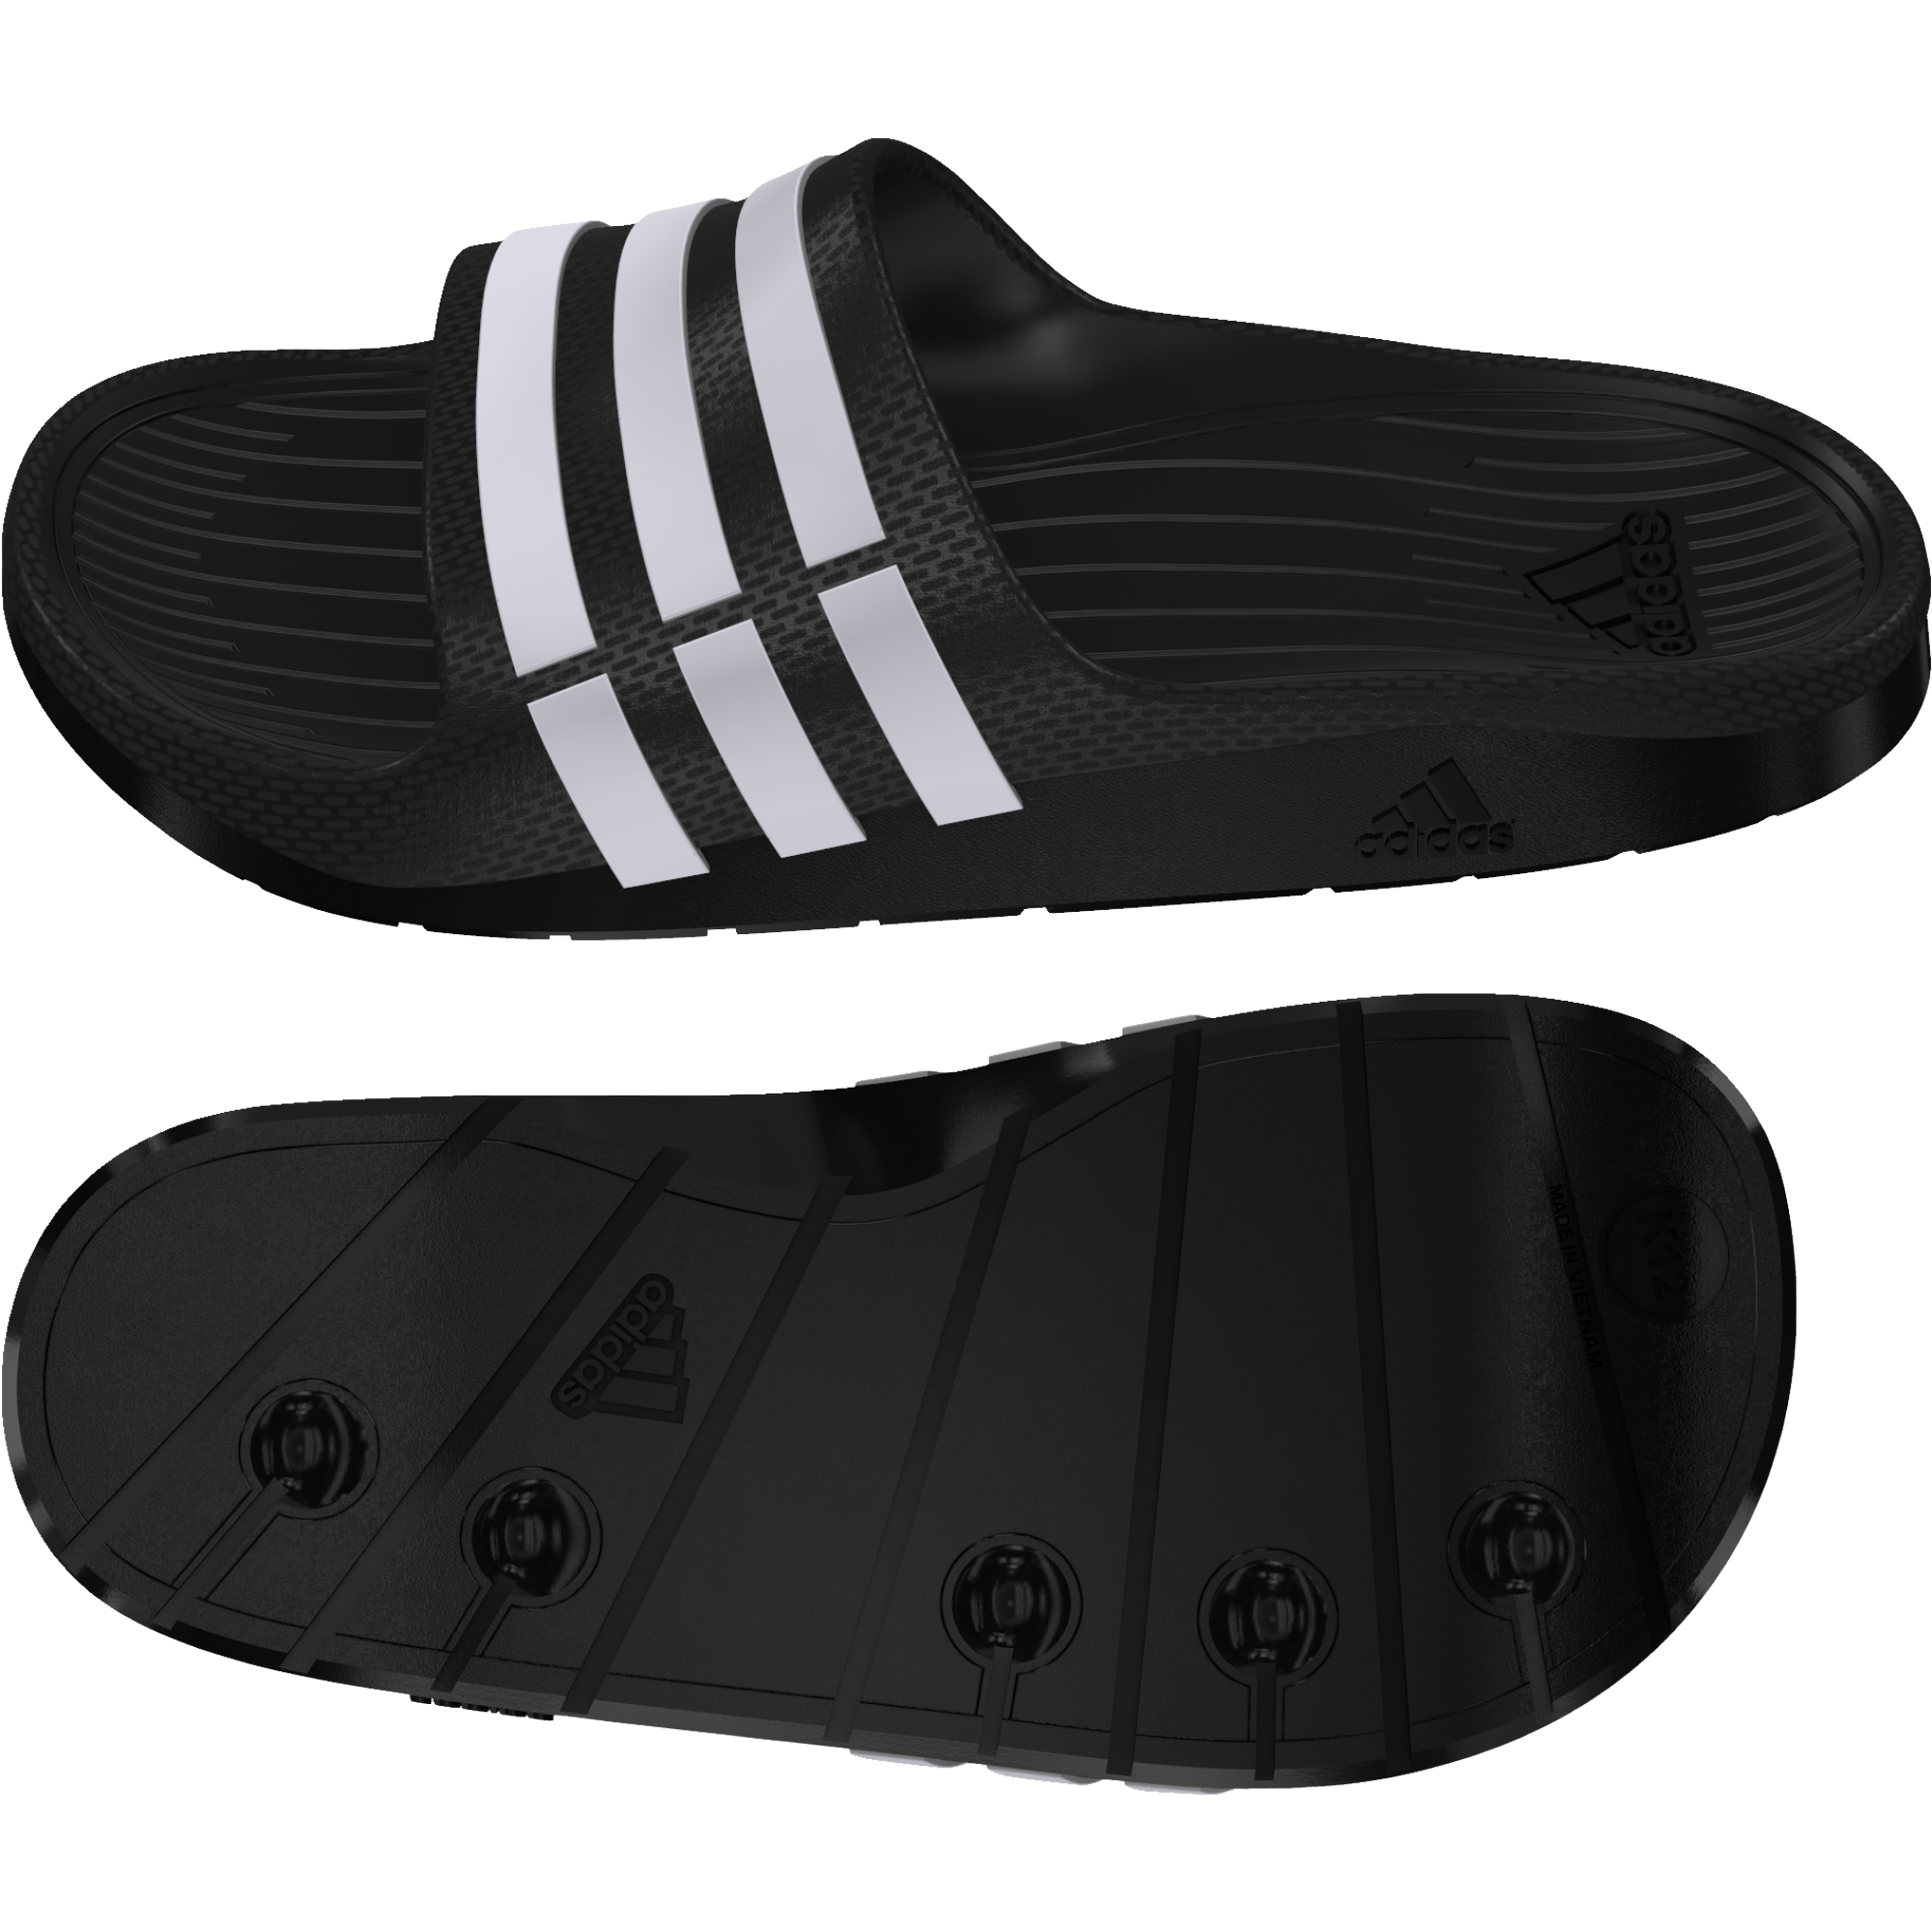 g06799 Adidas Duramo Slide Synthetic fiú papucs